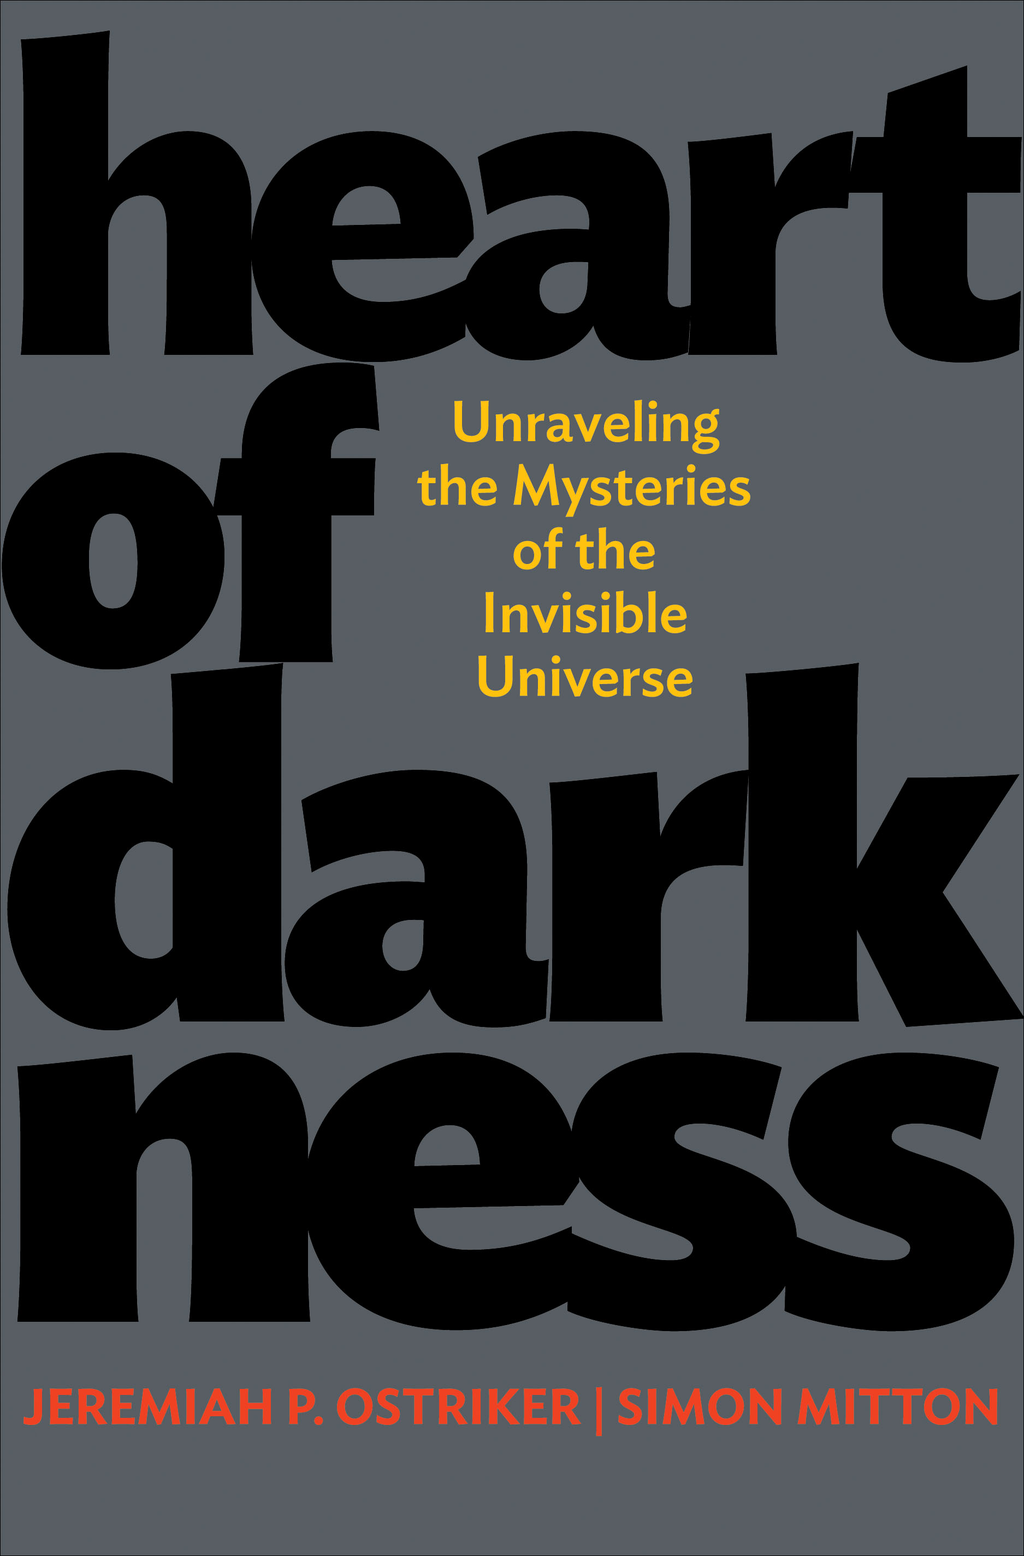 Heart of Darkness Unraveling the Mysteries of the Invisible Universe